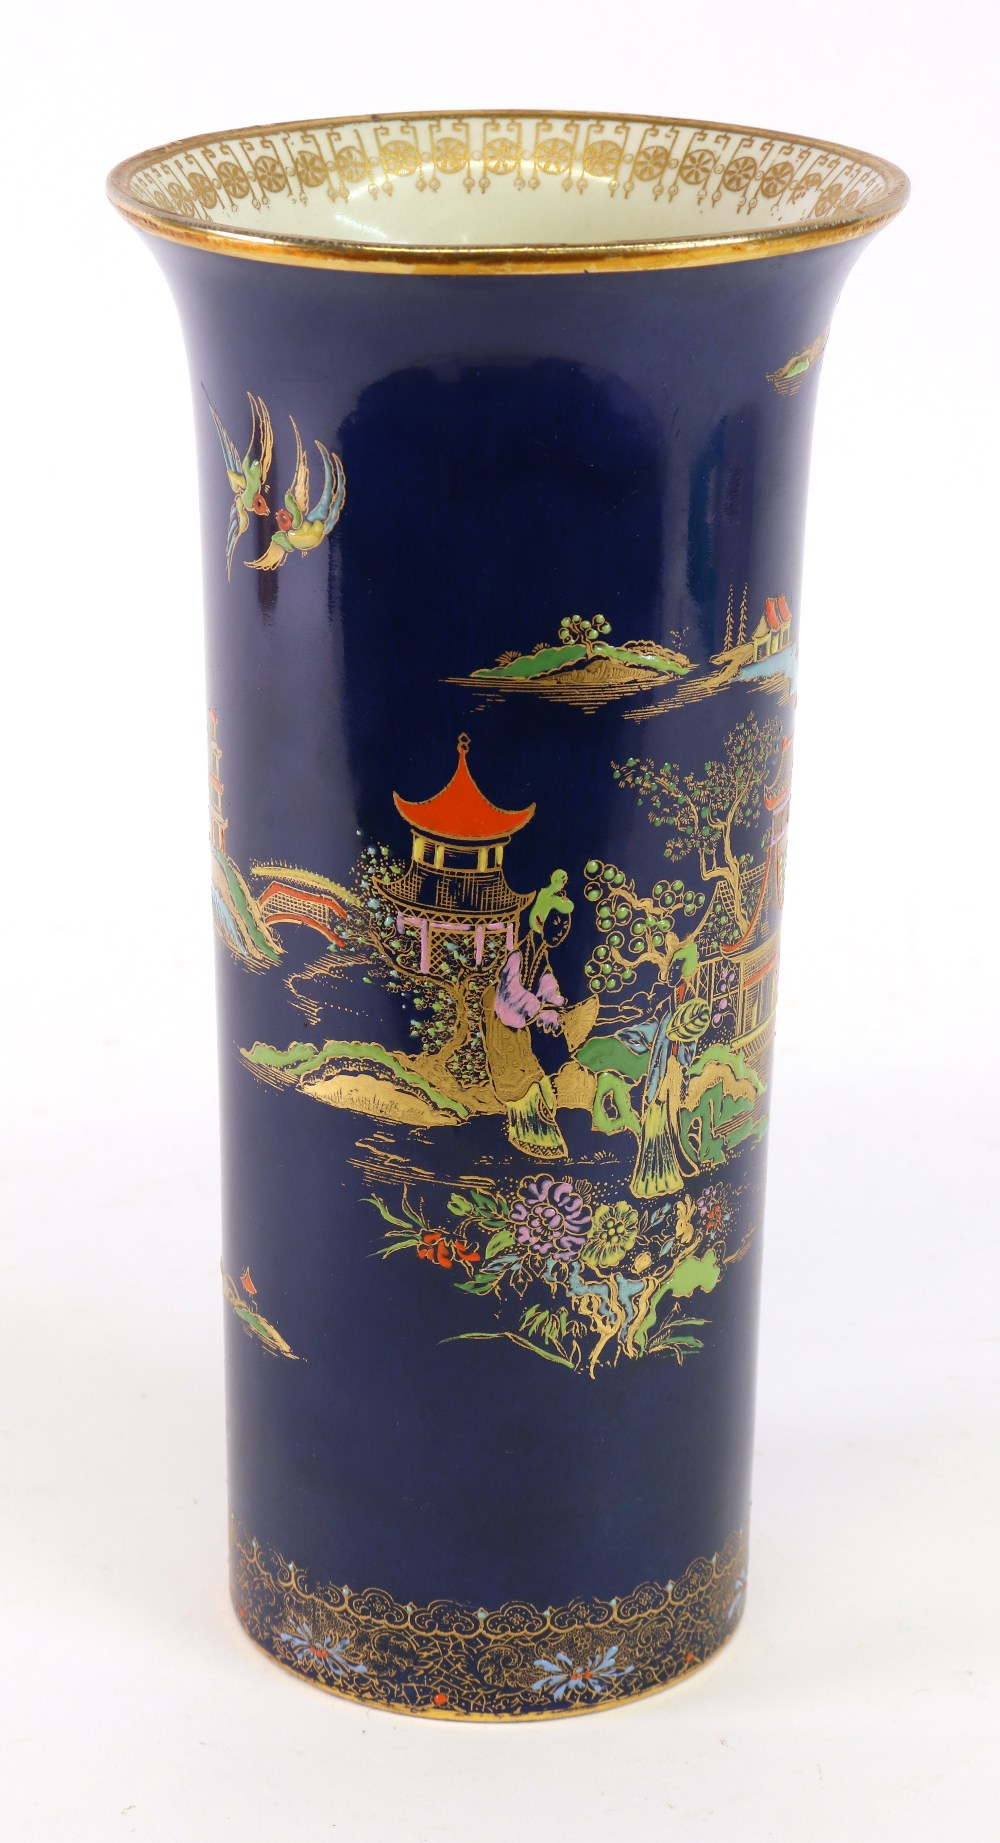 Lot 53 - A Carlton ware chinoiserie decorated vase, in the form of a Chinese brush pot,